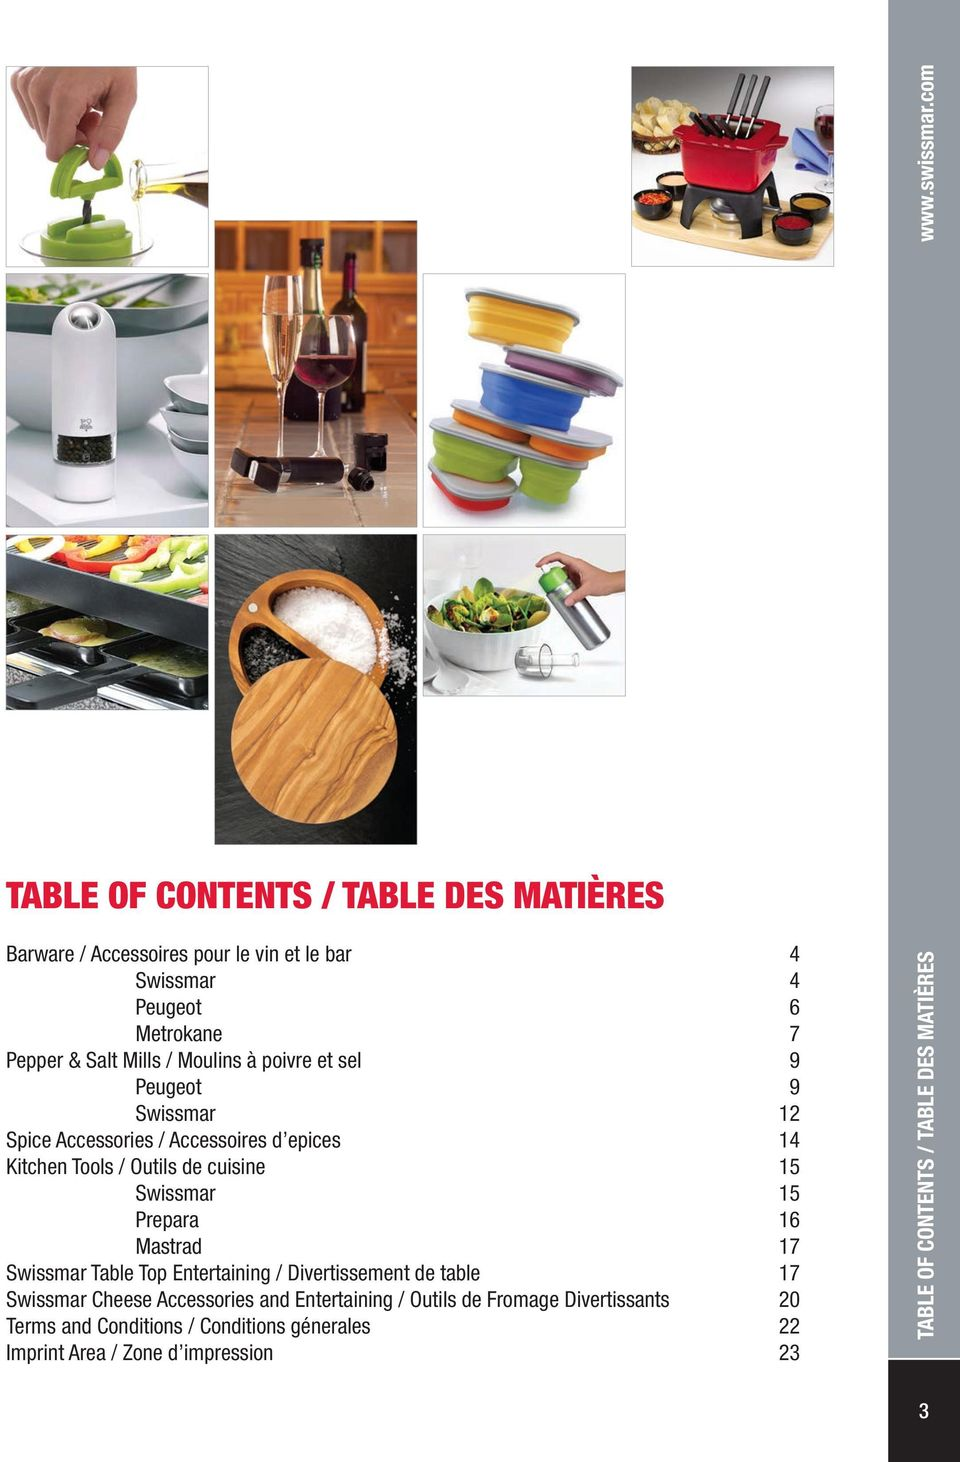 15 Swissmar 15 Prepara 16 Mastrad 17 Swissmar Table Top Entertaining / Divertissement de table 17 Swissmar Cheese Accessories and